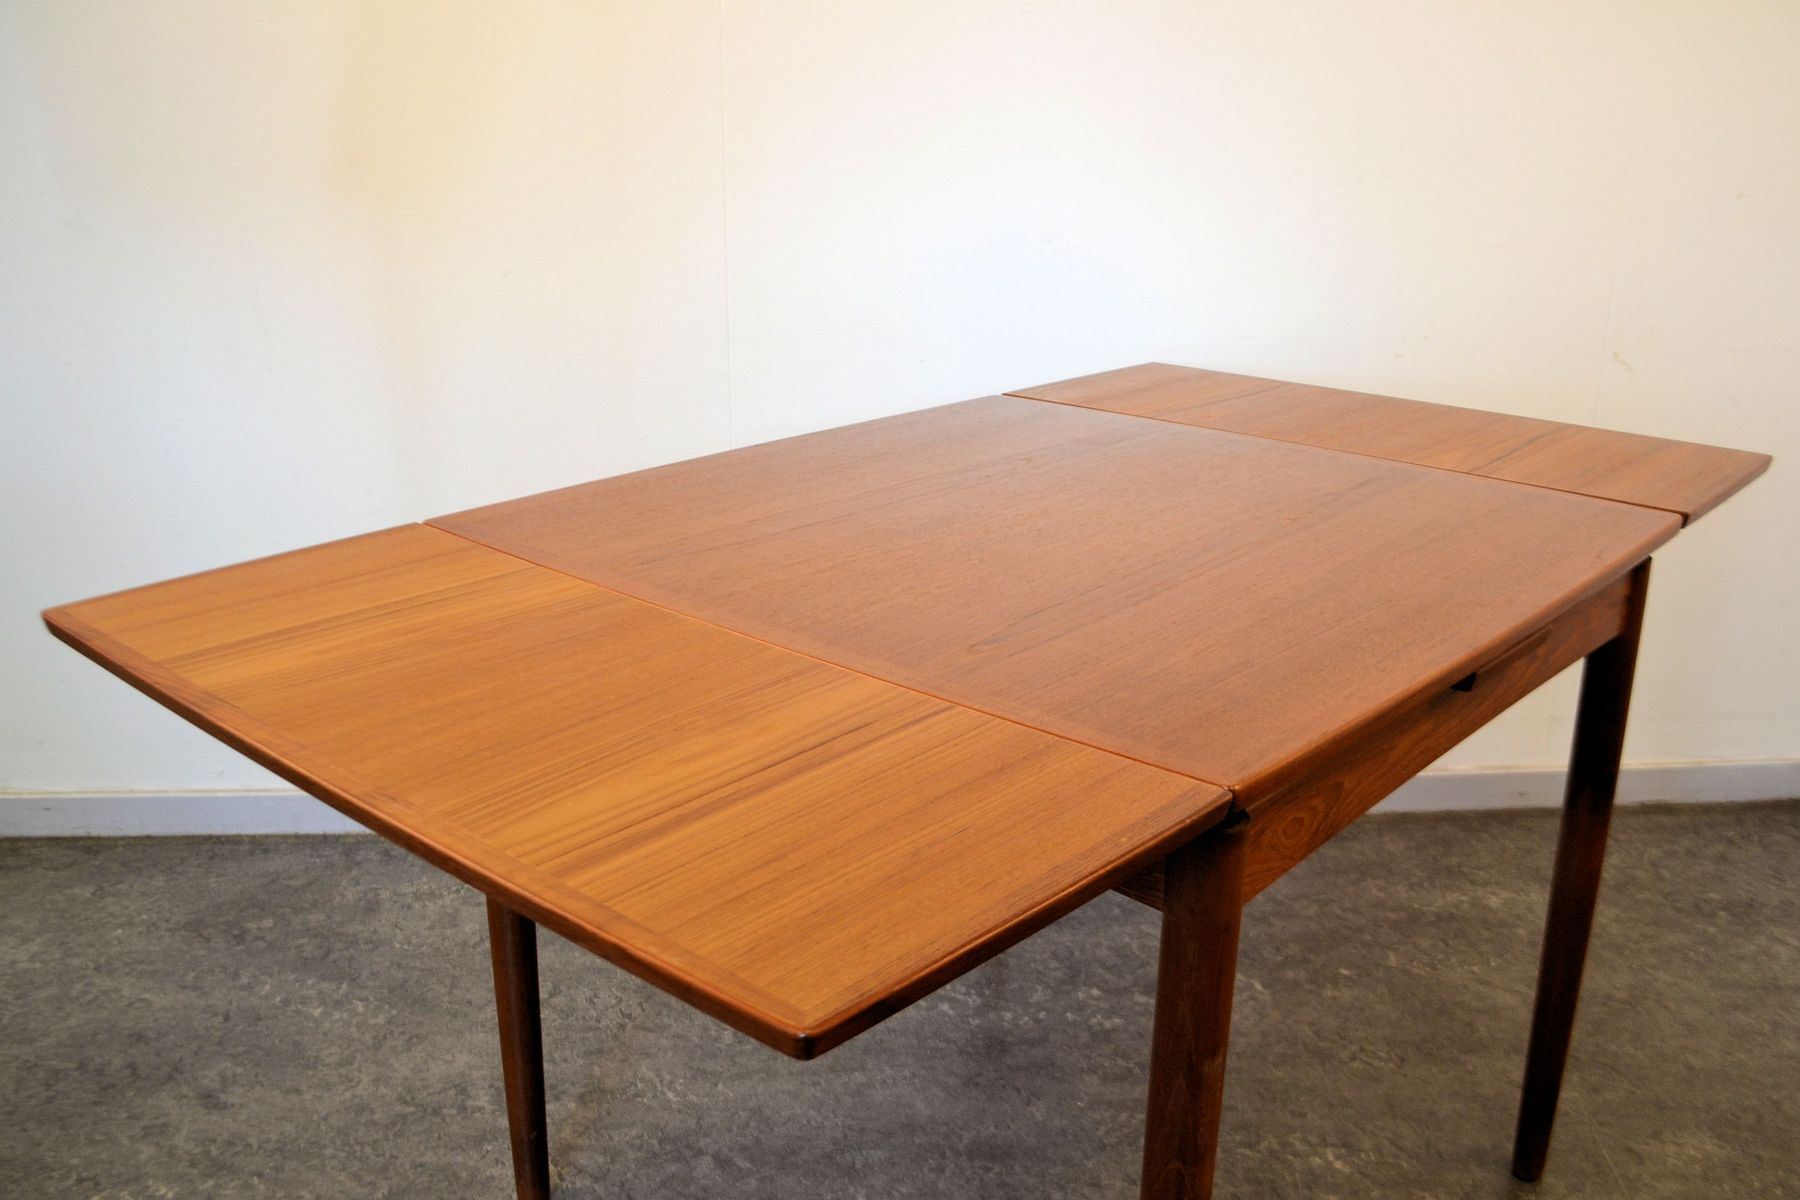 Vintage Danish Extendable Teak Dining Table By Poul Hundevad